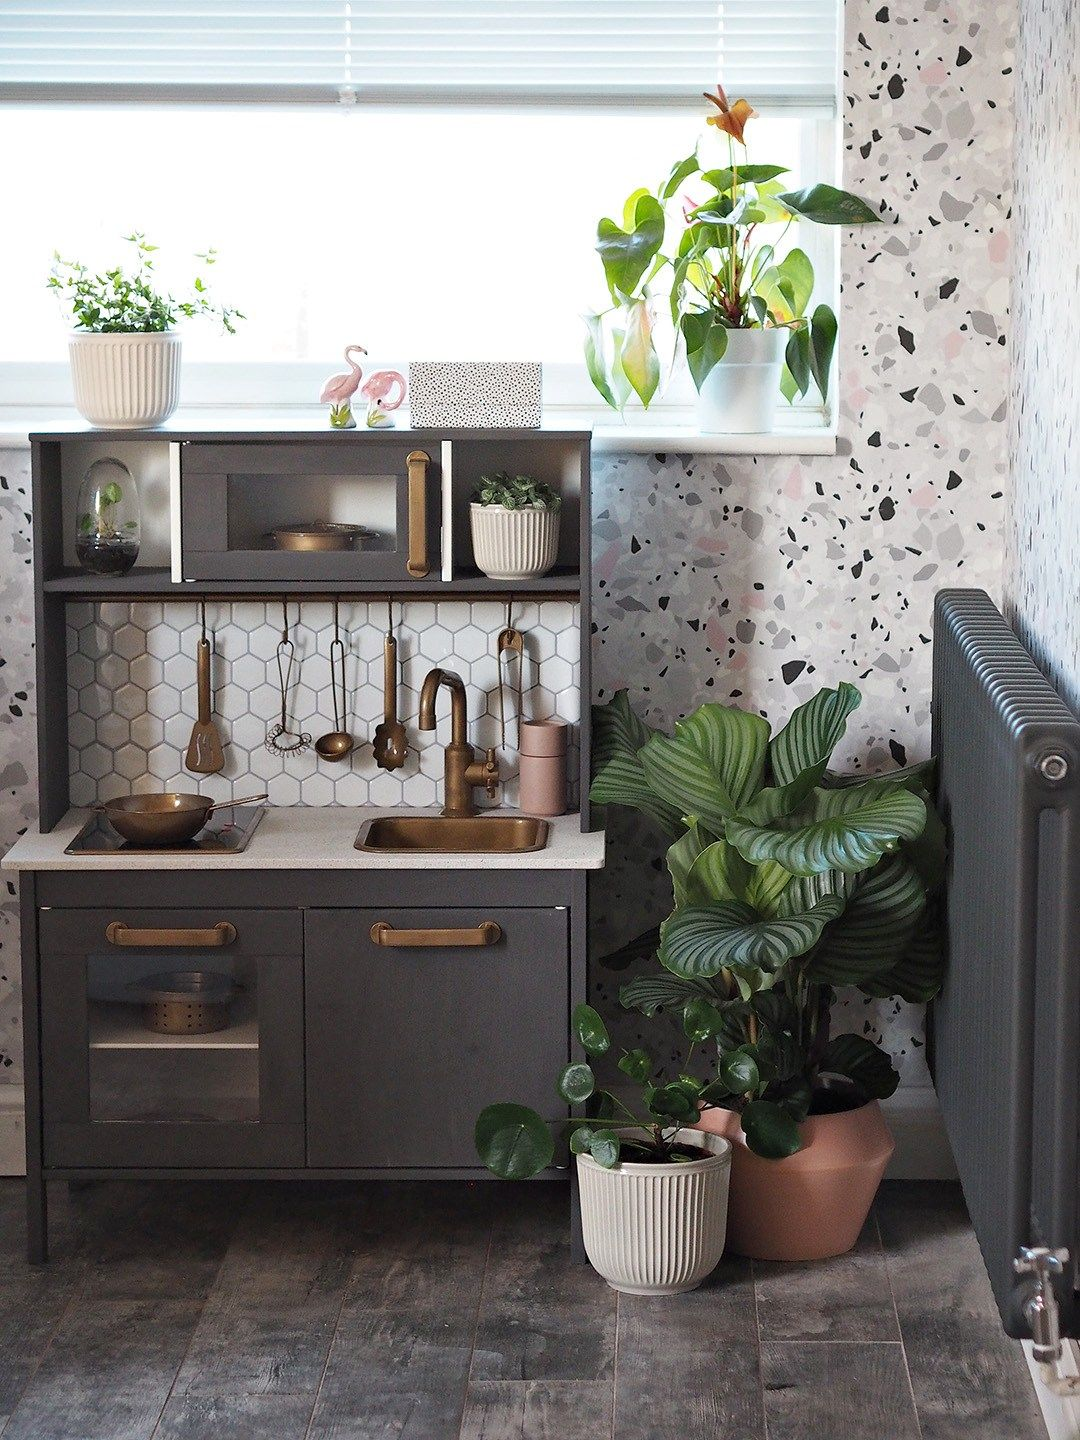 IKEA DUKTIG Play Kitchen with Aldi Upcycling Range in 2020 ...